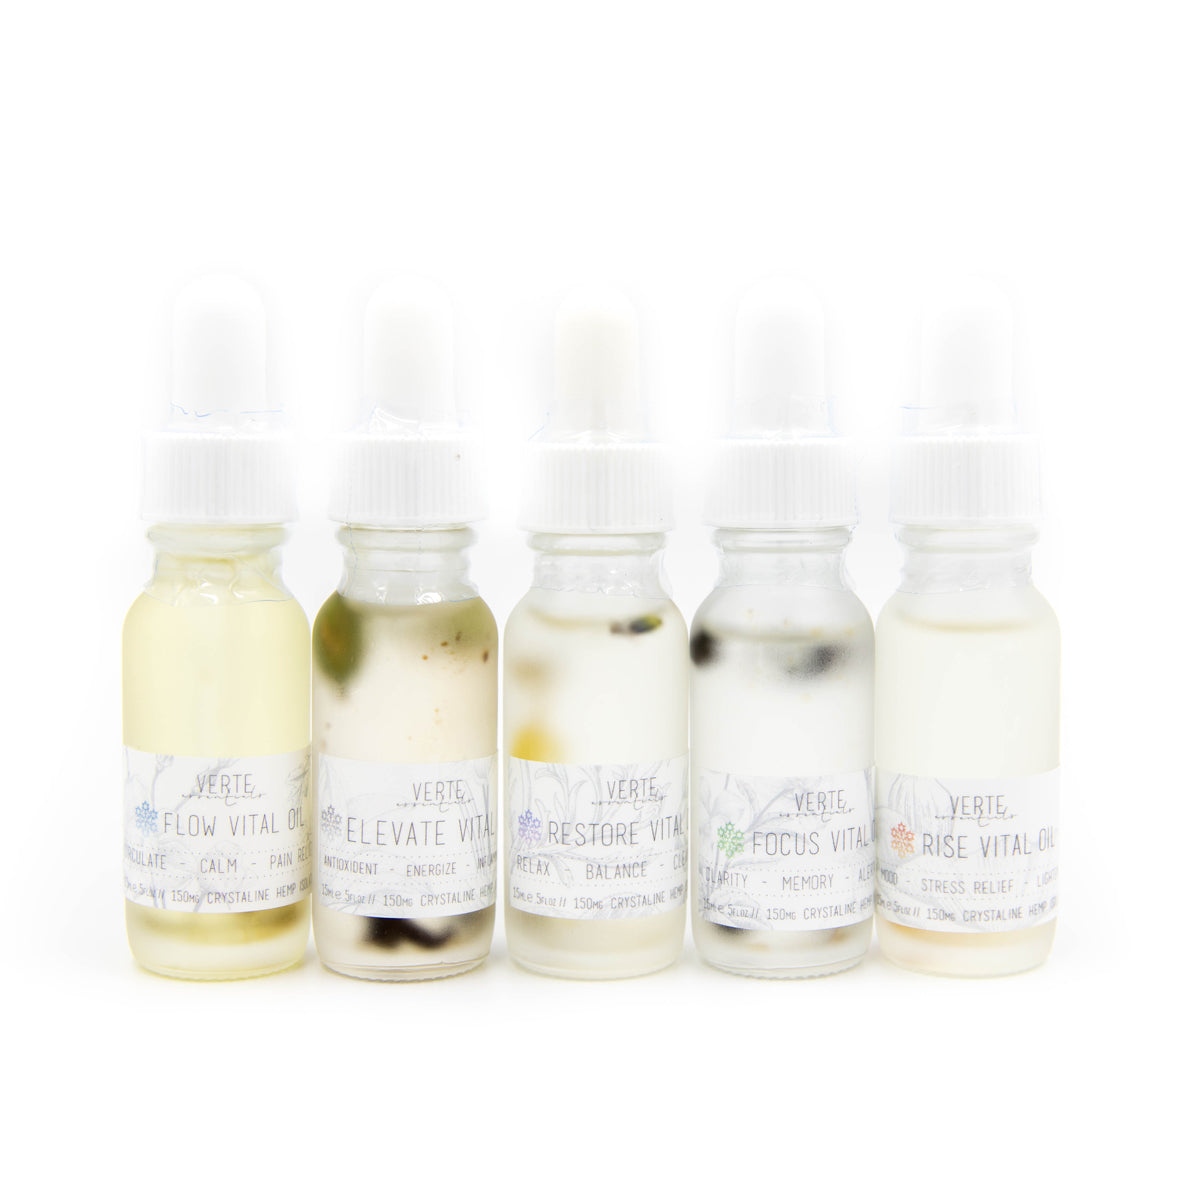 Vital Oil - Skin & Beauty Facial Oil